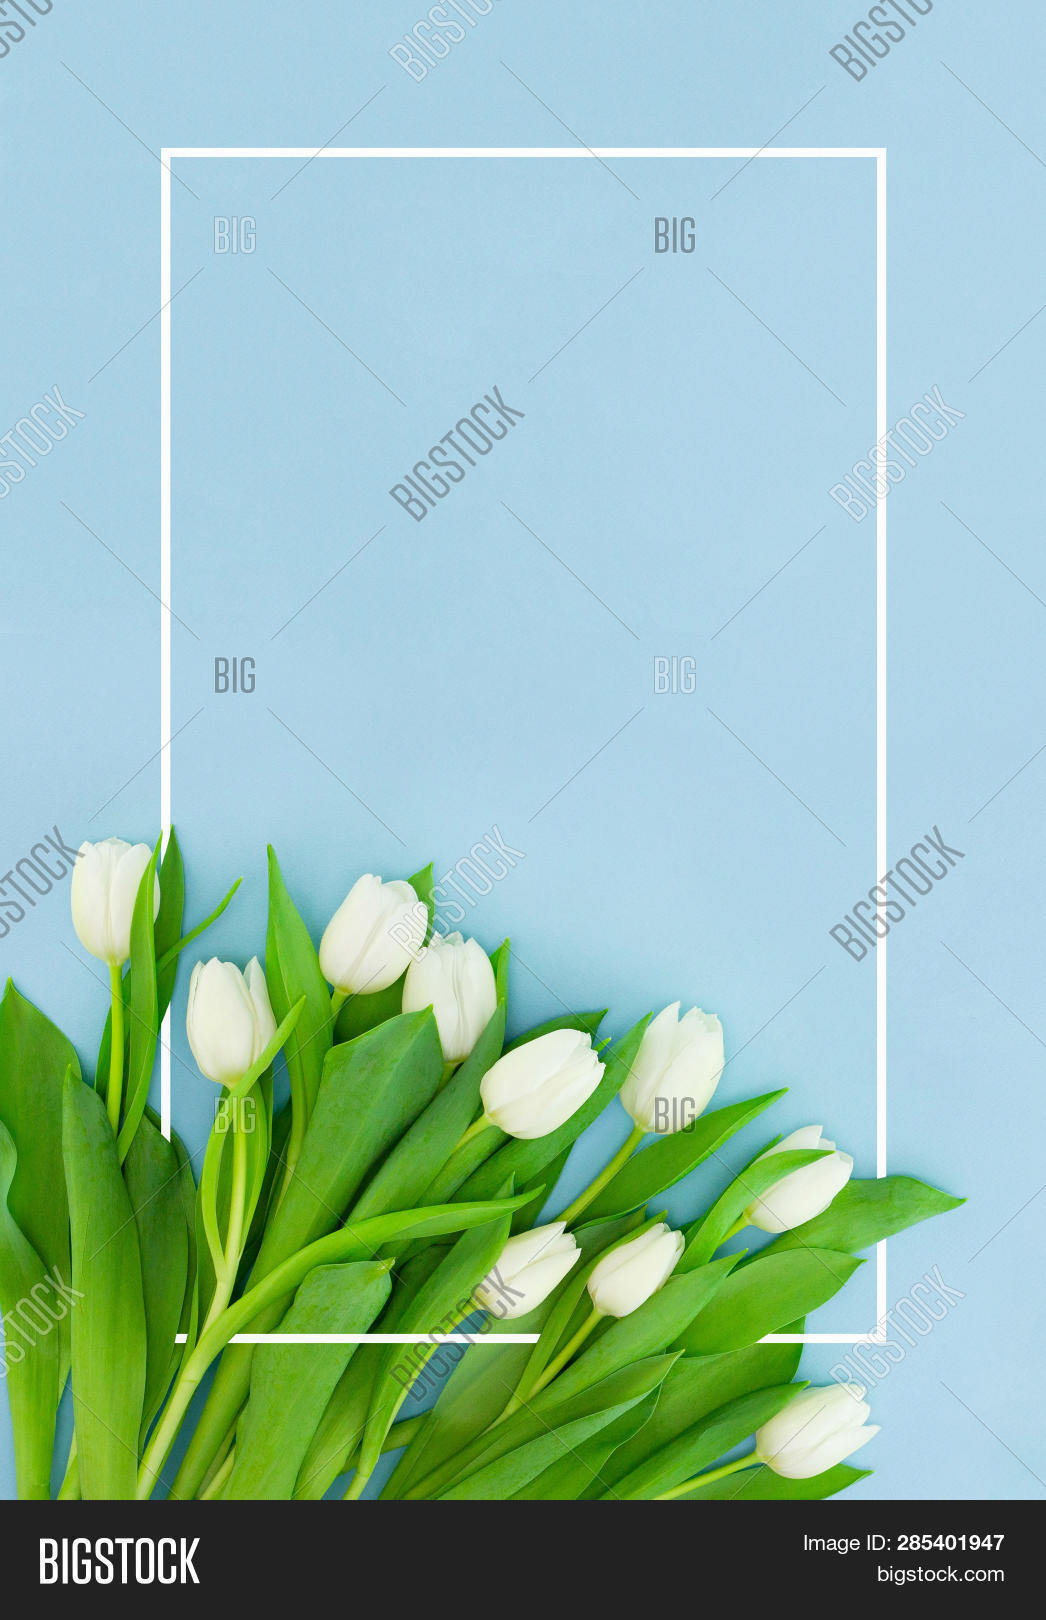 White Tulips On Blue Background With Frame, Flower Postcard For Women's Day, Mother's Day Or Sale Co